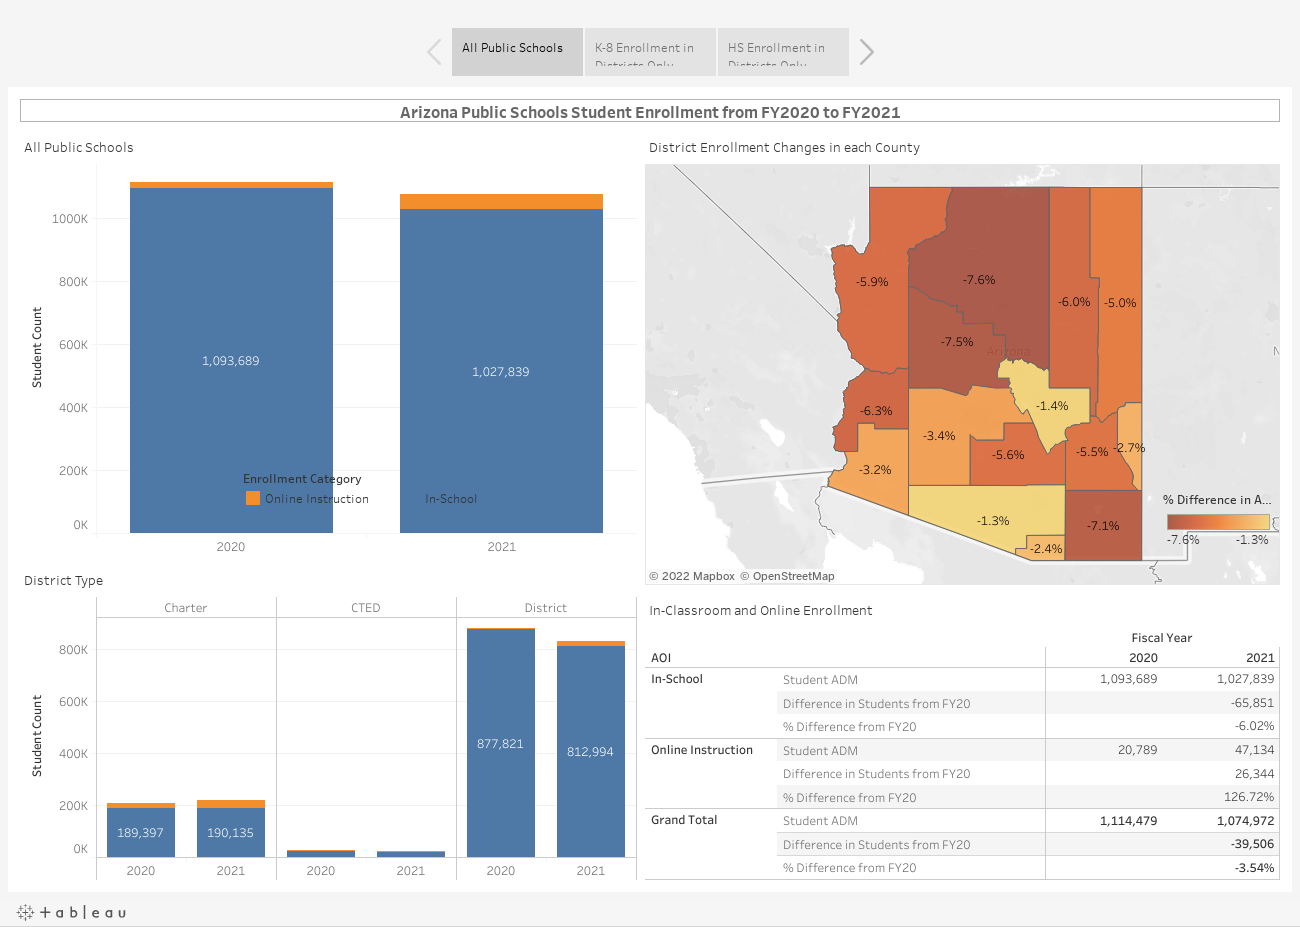 Declining enrollment: Where have Arizona's students gone and their funding? https://public.tableau.com/static/images/En/EnrollmentChanges20to21/Story1/1_rss